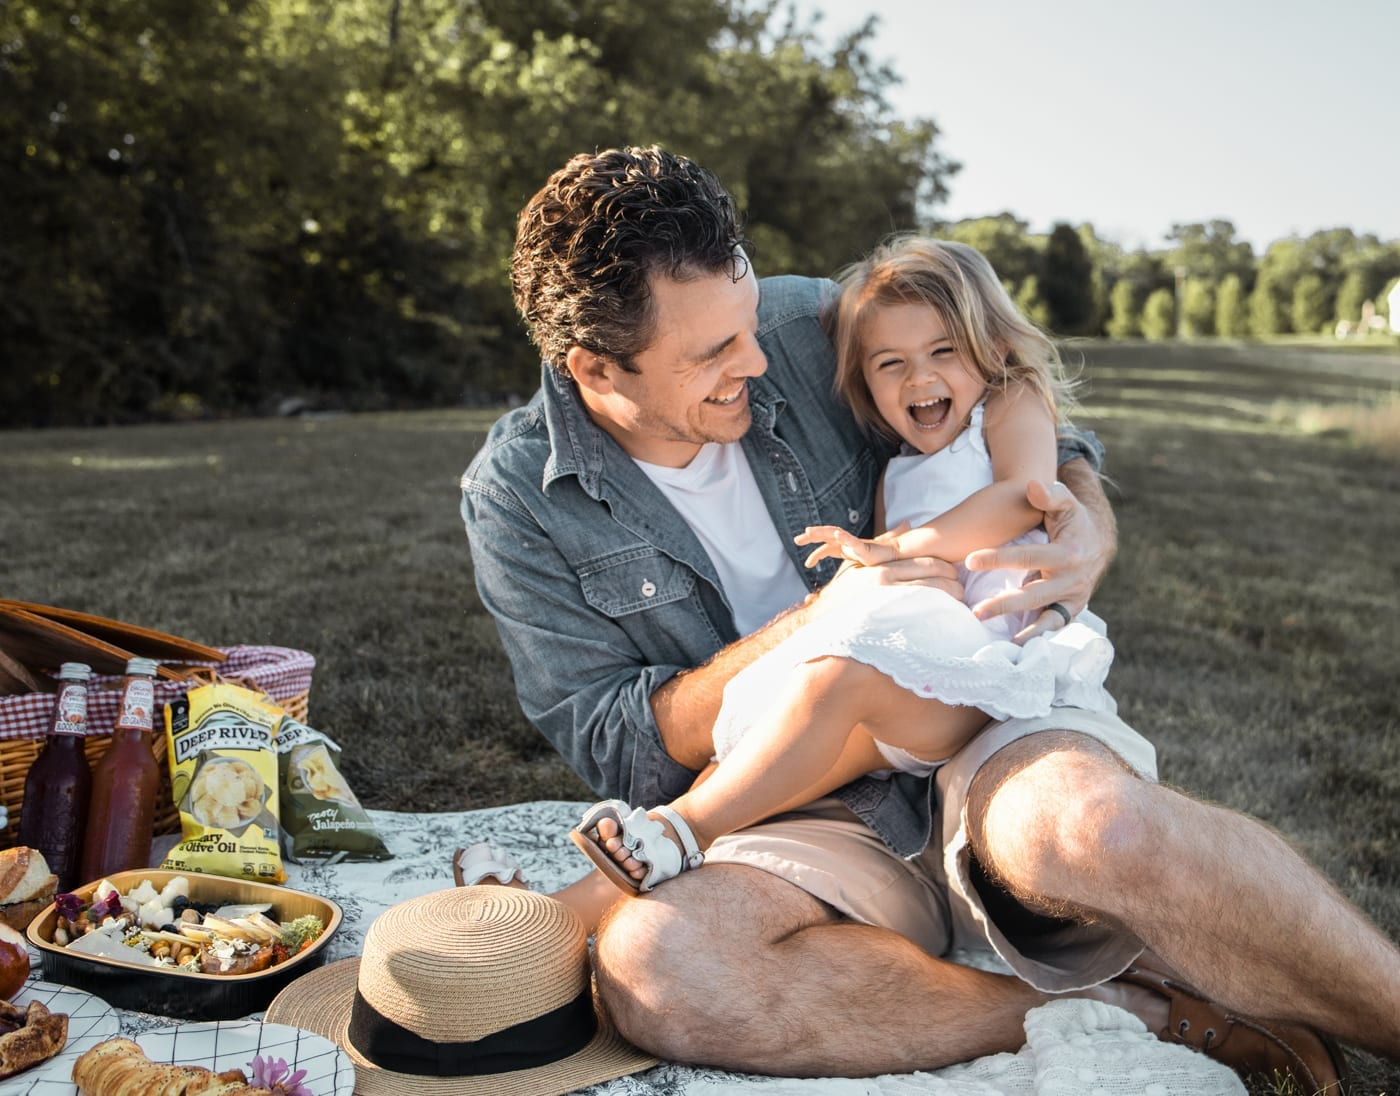 Dining Al Fresco - Mediterra Cafe- Pittsburgh- Ashley Pletcher- Family Picnic- Father and Daughter